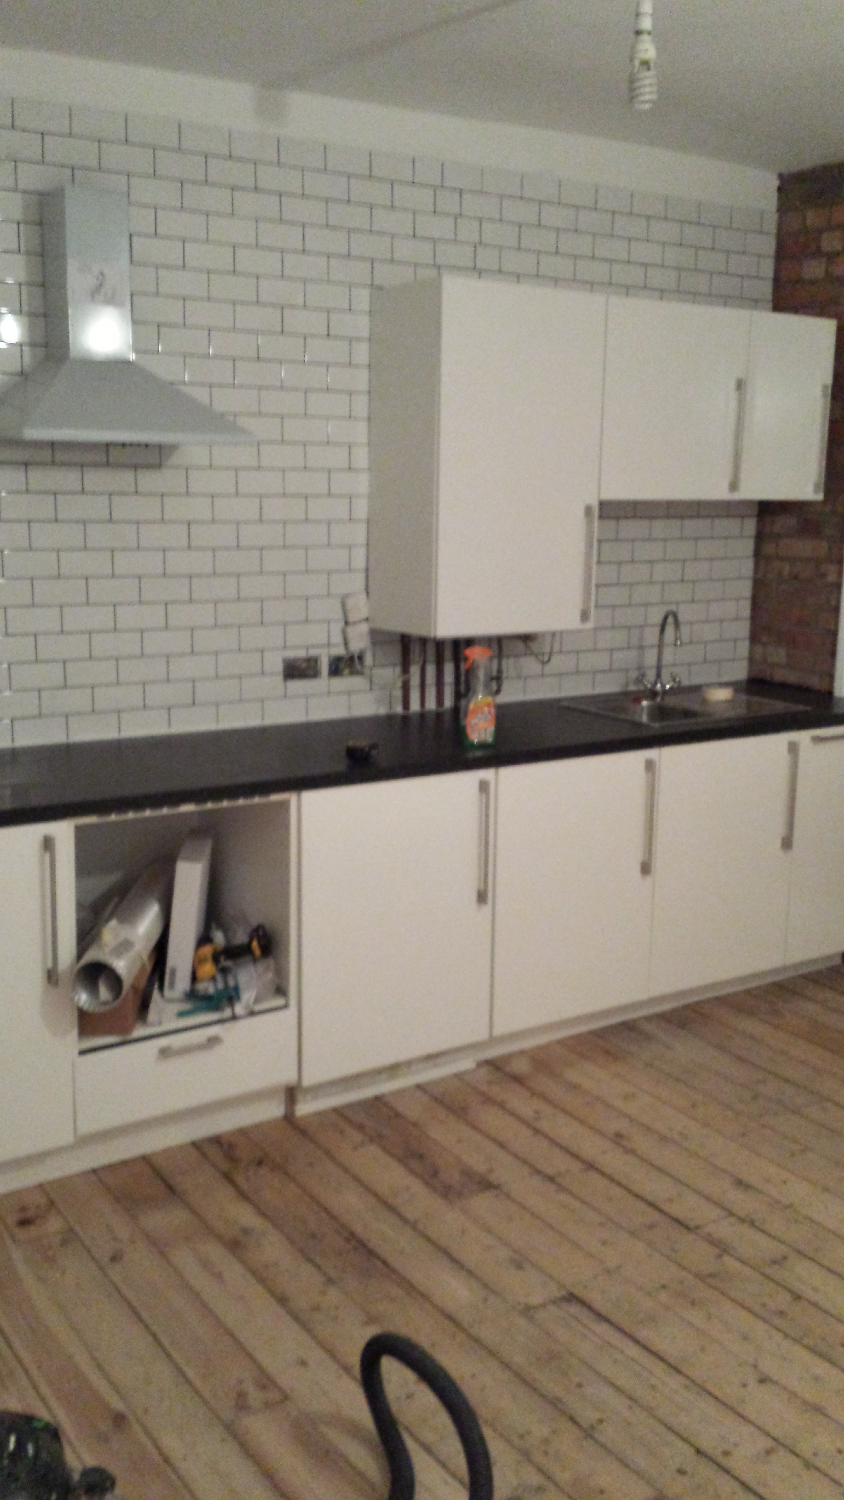 Installing new kitchen units, London